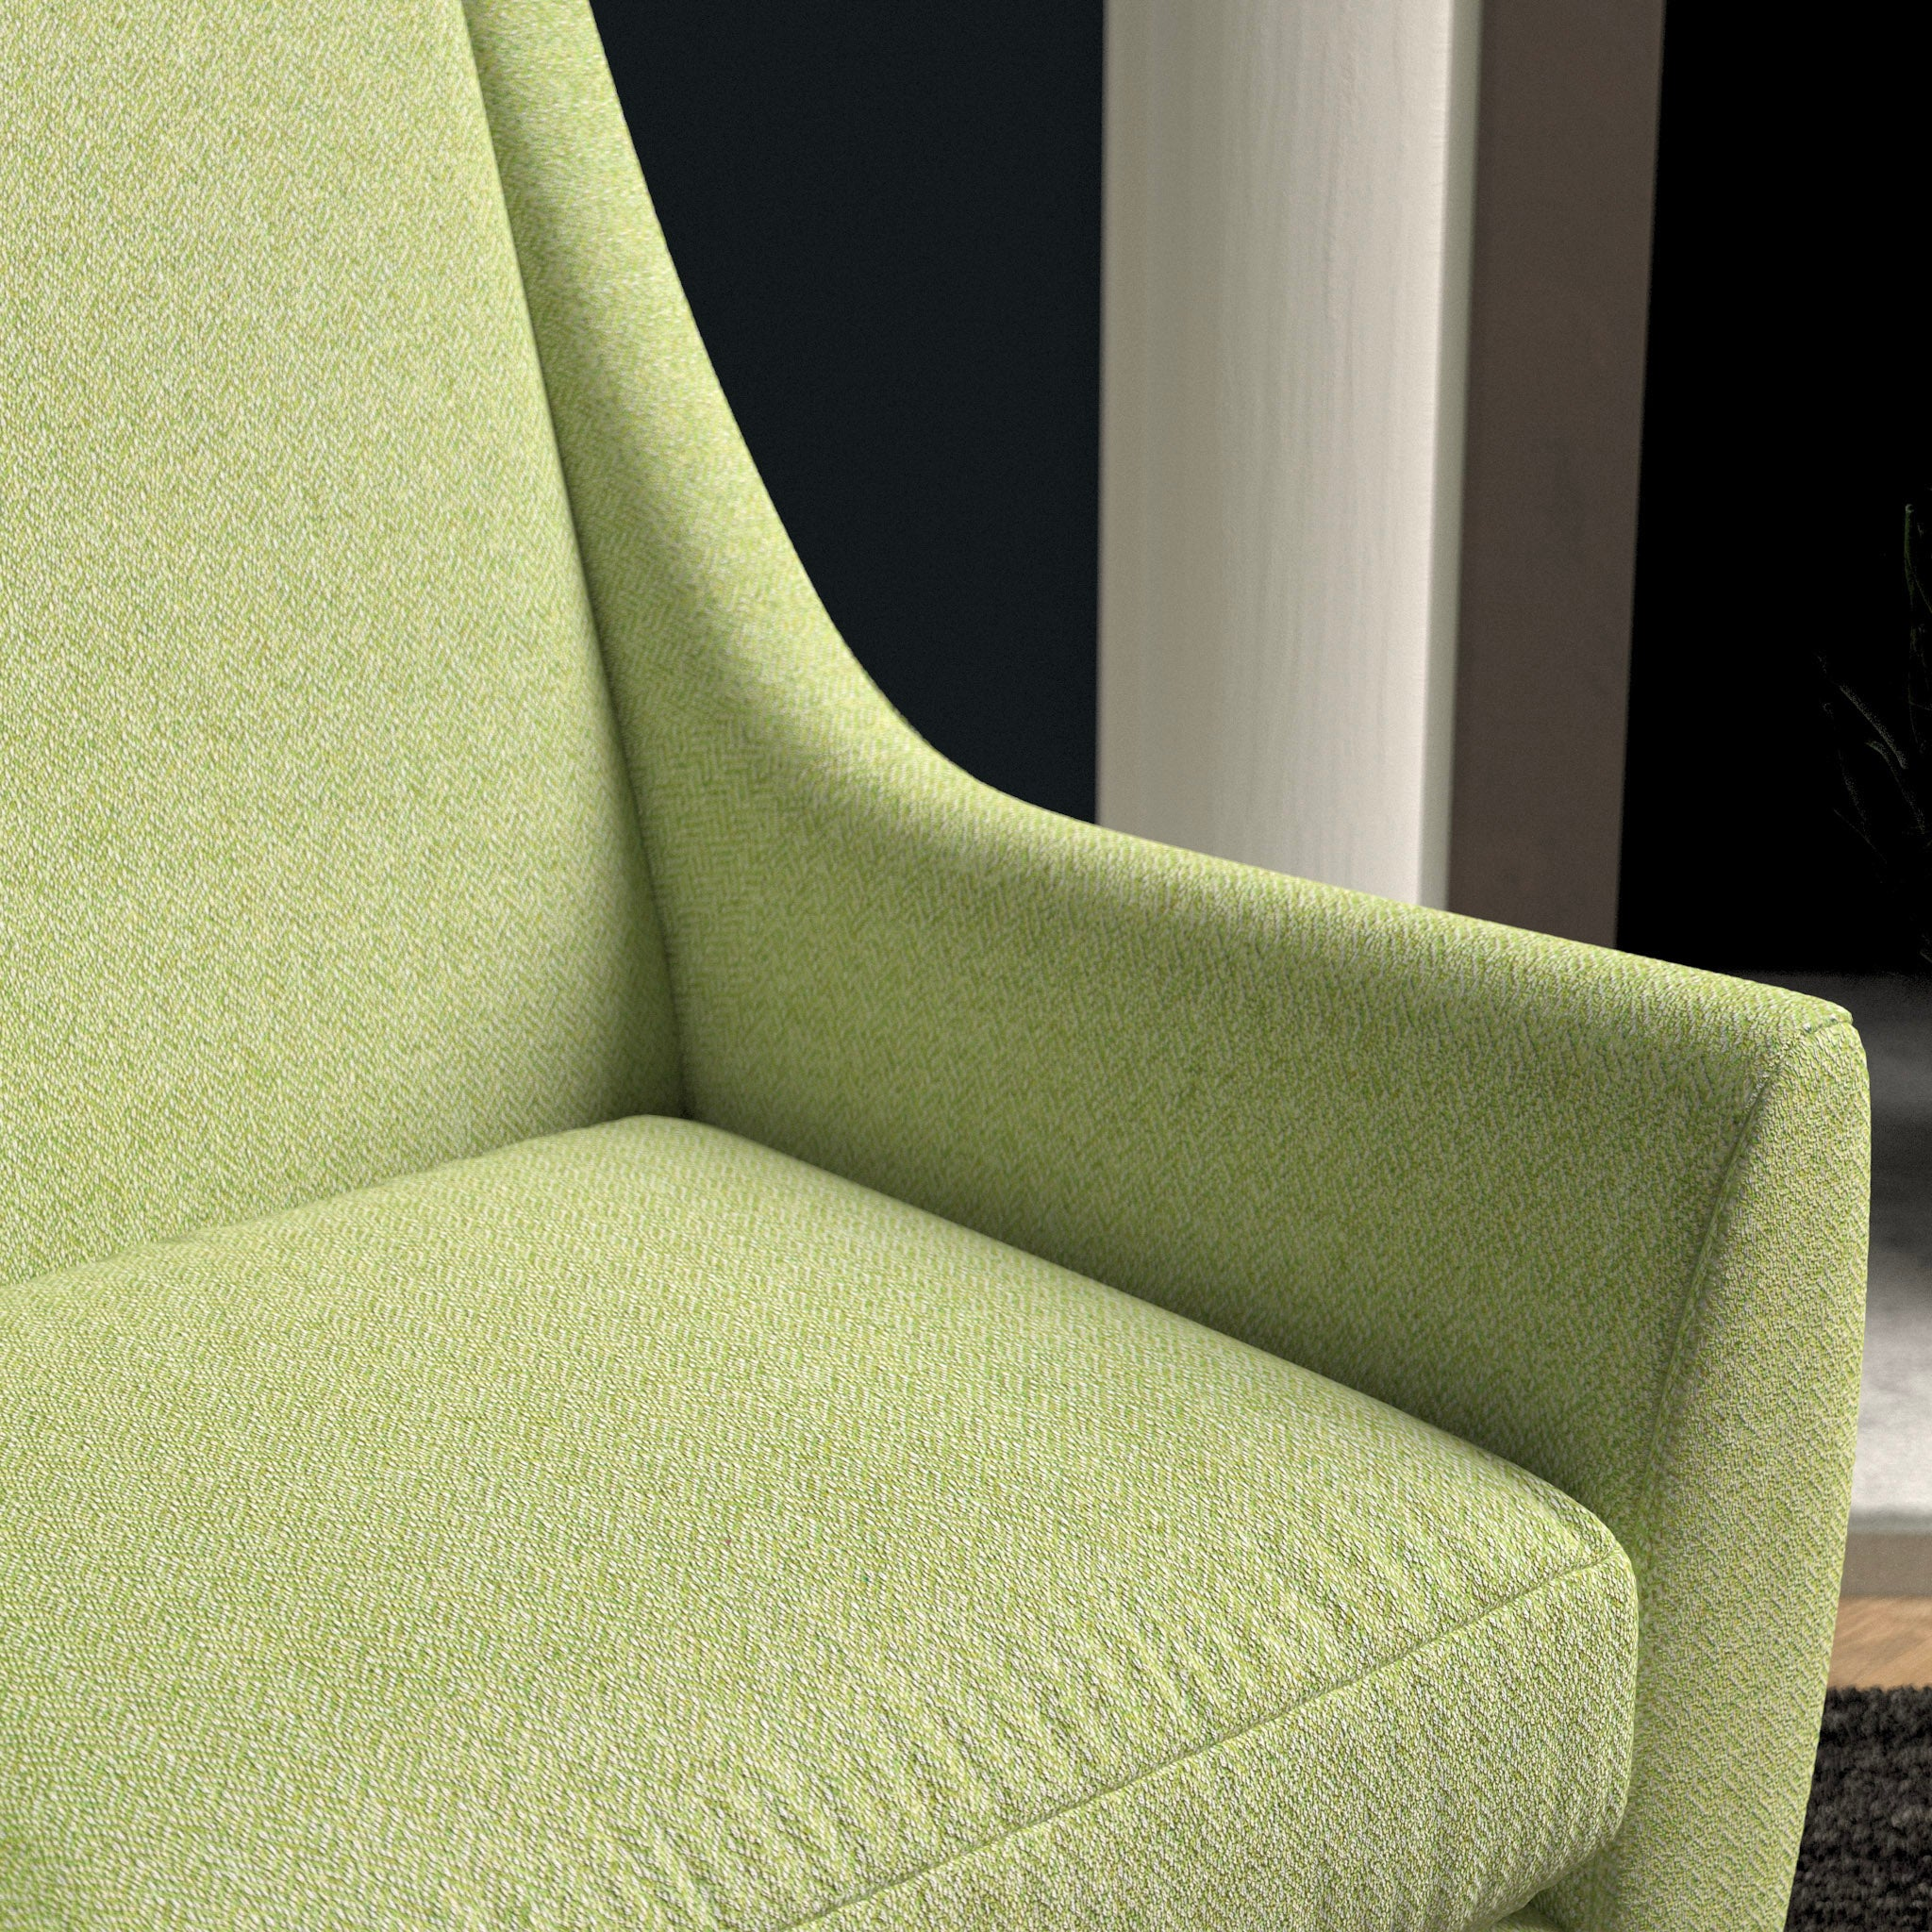 Chair in a lime green herringbone wool upholstery fabric